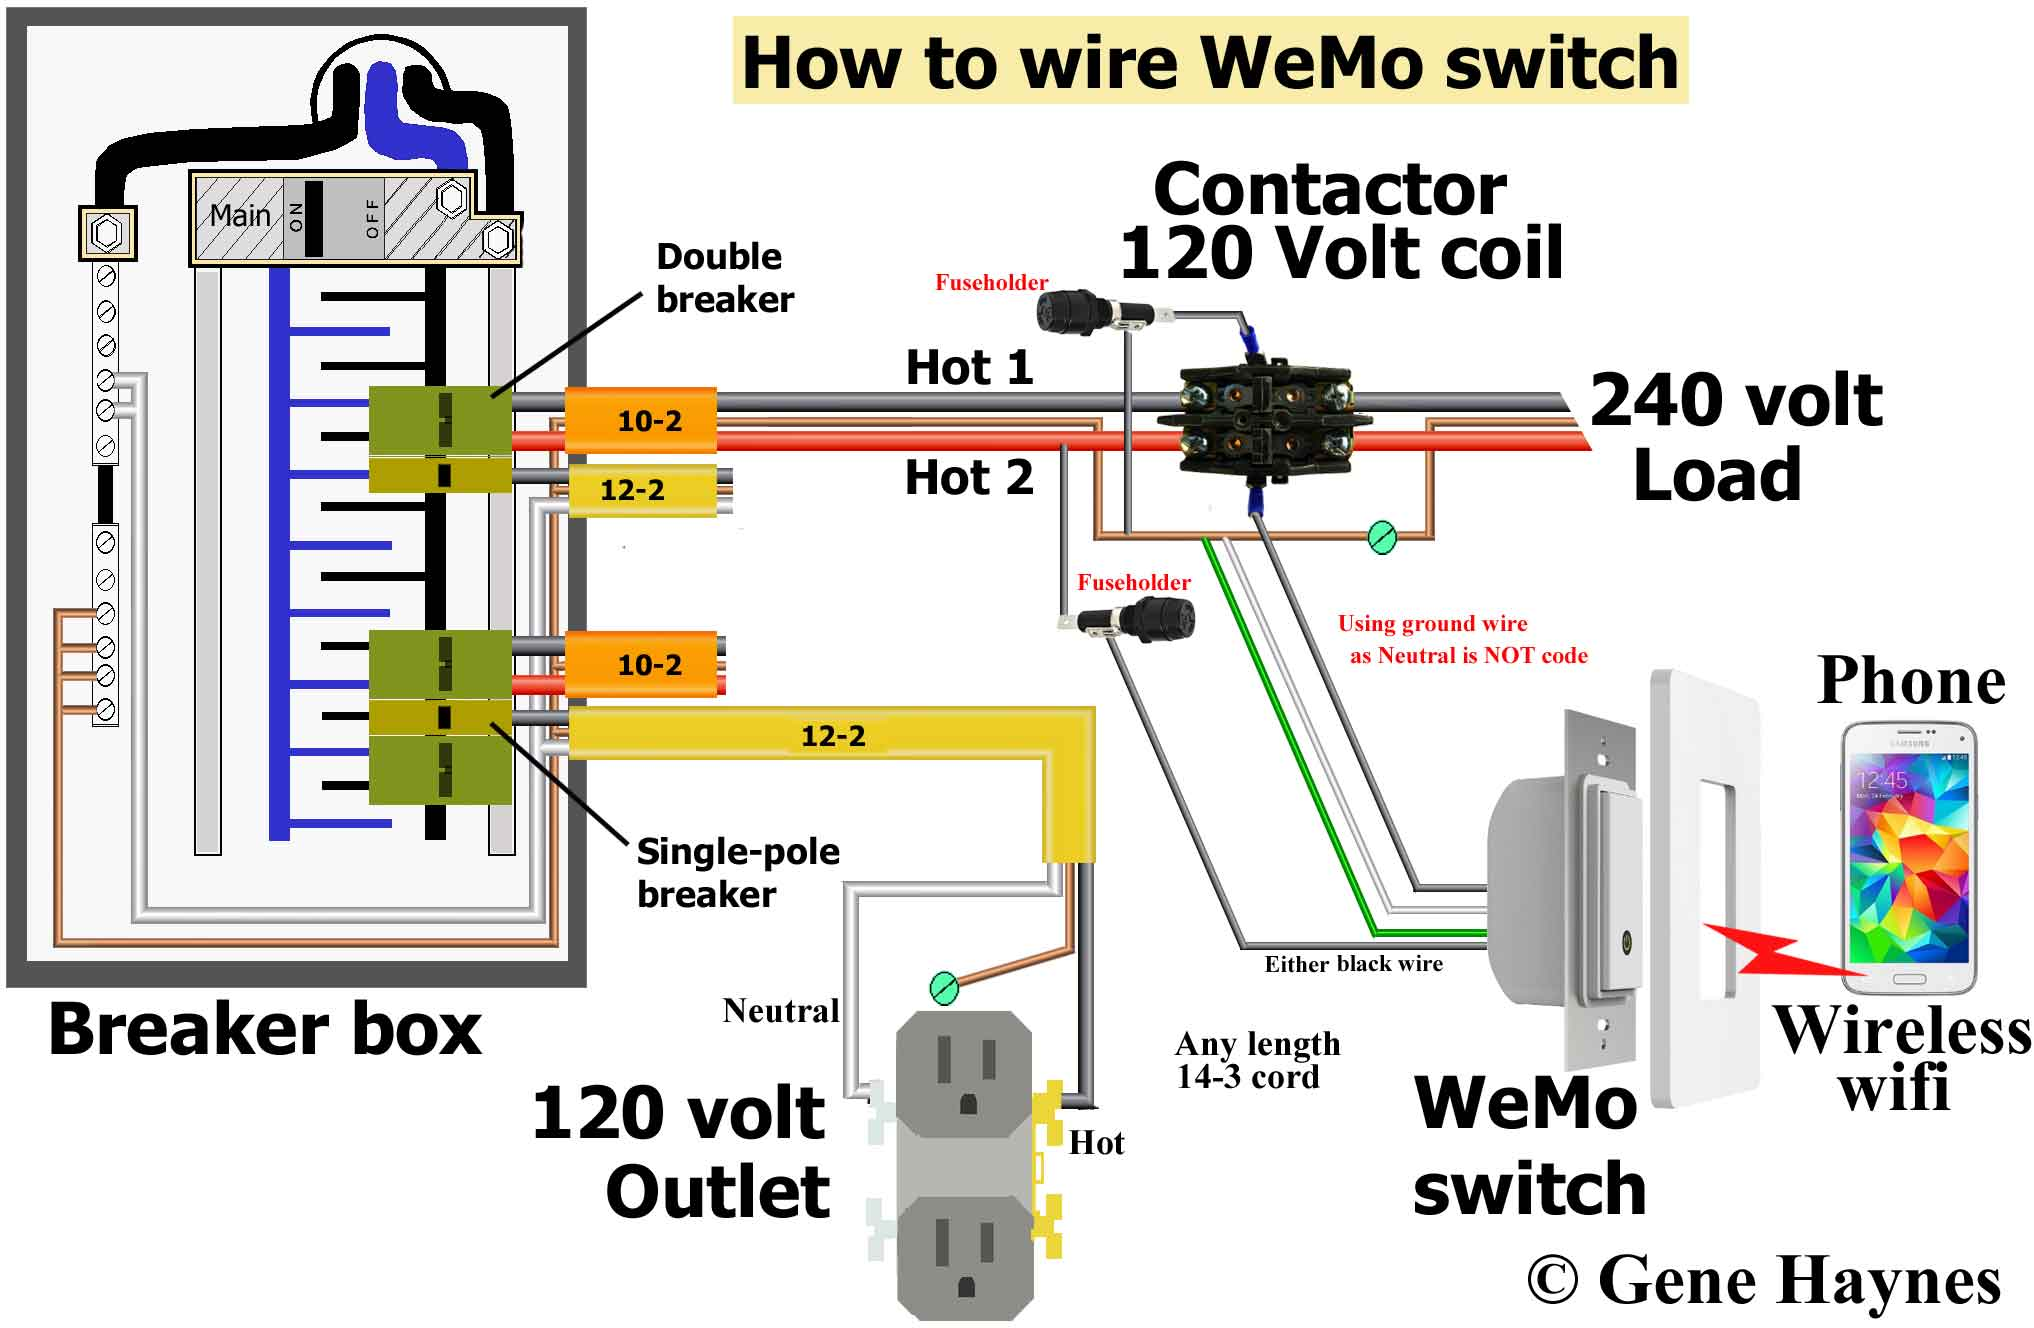 WeMo switch wiring illustration 33 not code 220v light switch wiring diagram air compressor pressure switch light switch wiring schematic at n-0.co